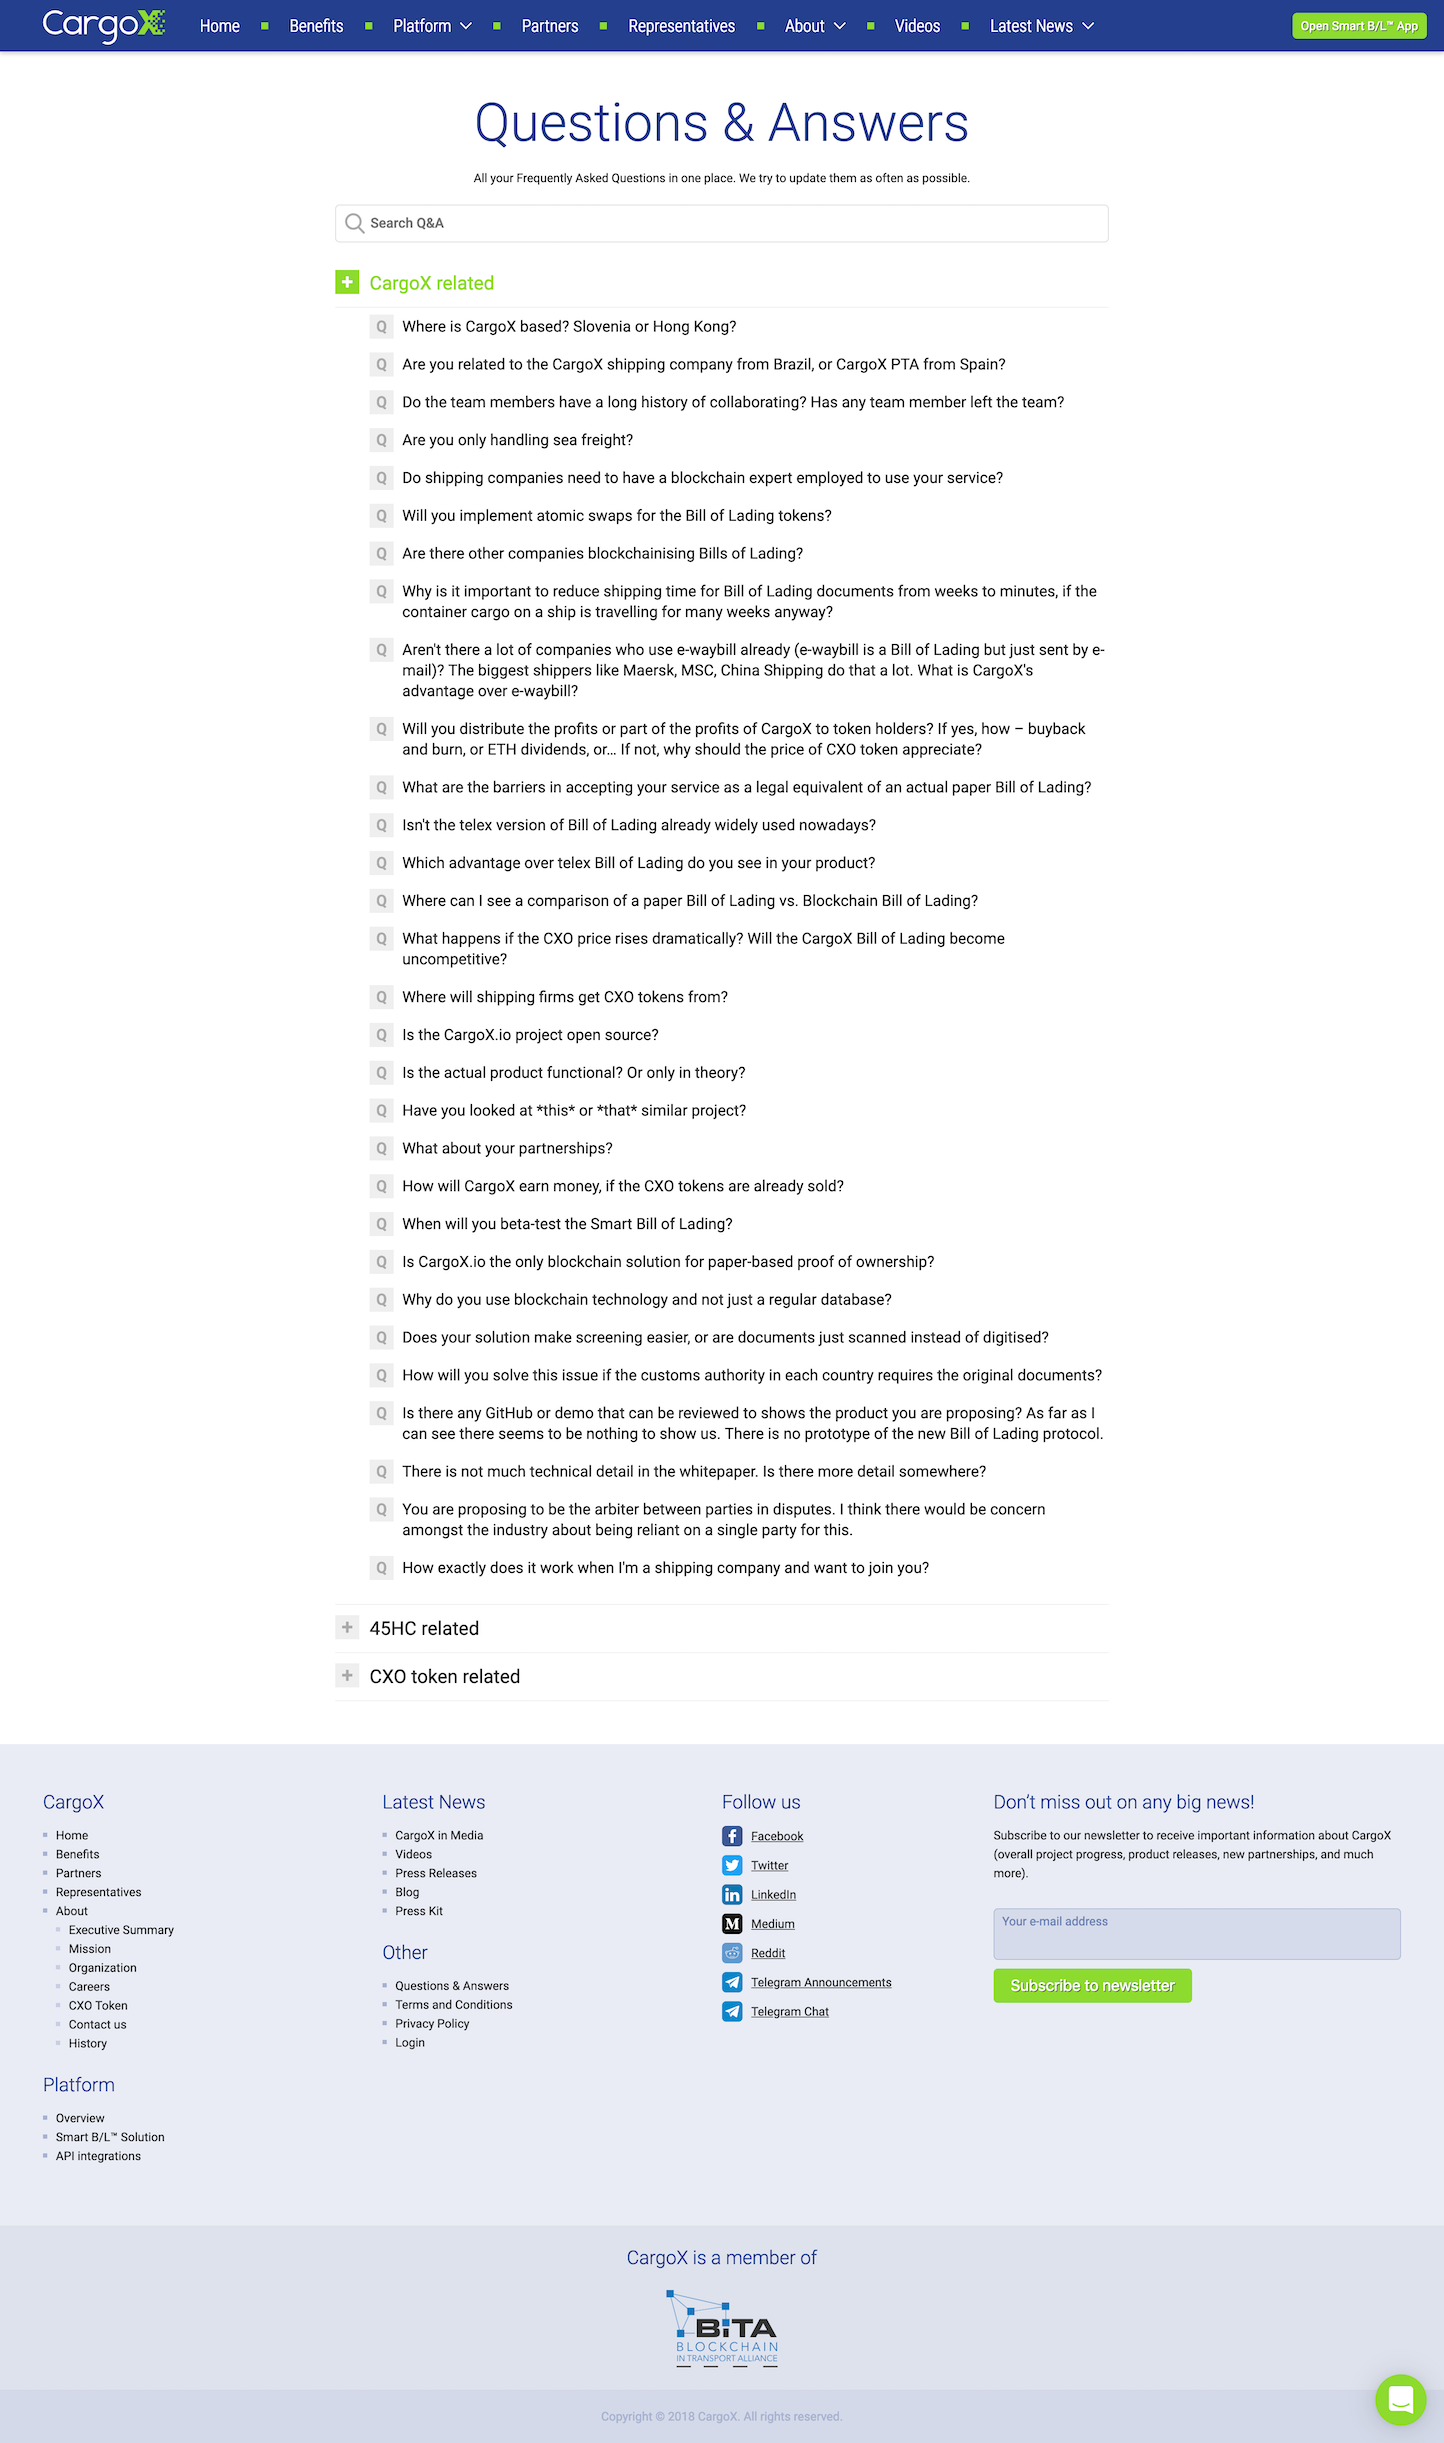 Screenshot of the Questions & Answers page from the CargoX website.